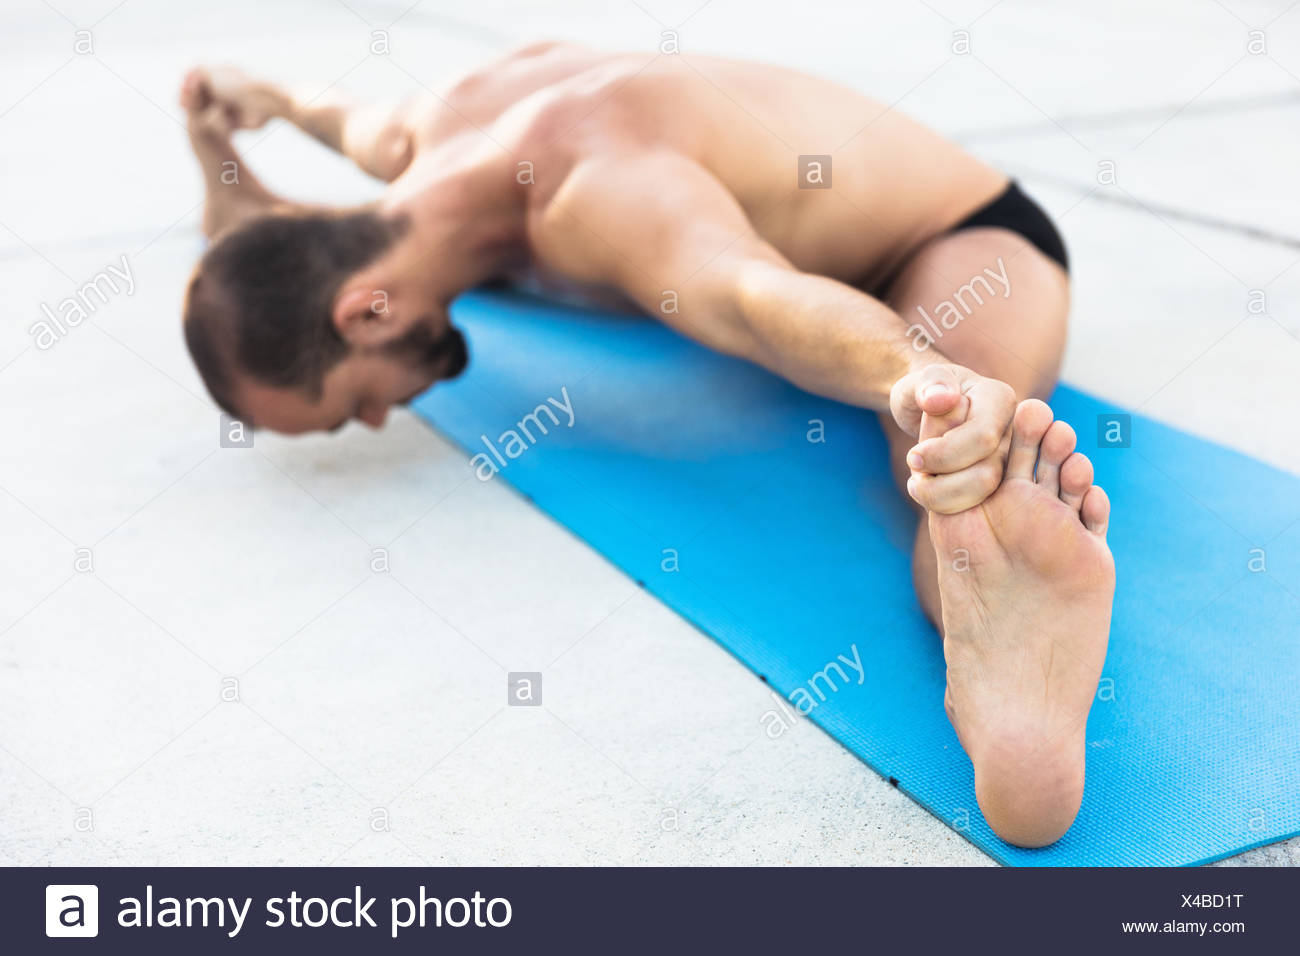 Man practicing yoga, sitting on yoga mat doing the splits and touching toes - Stock Image